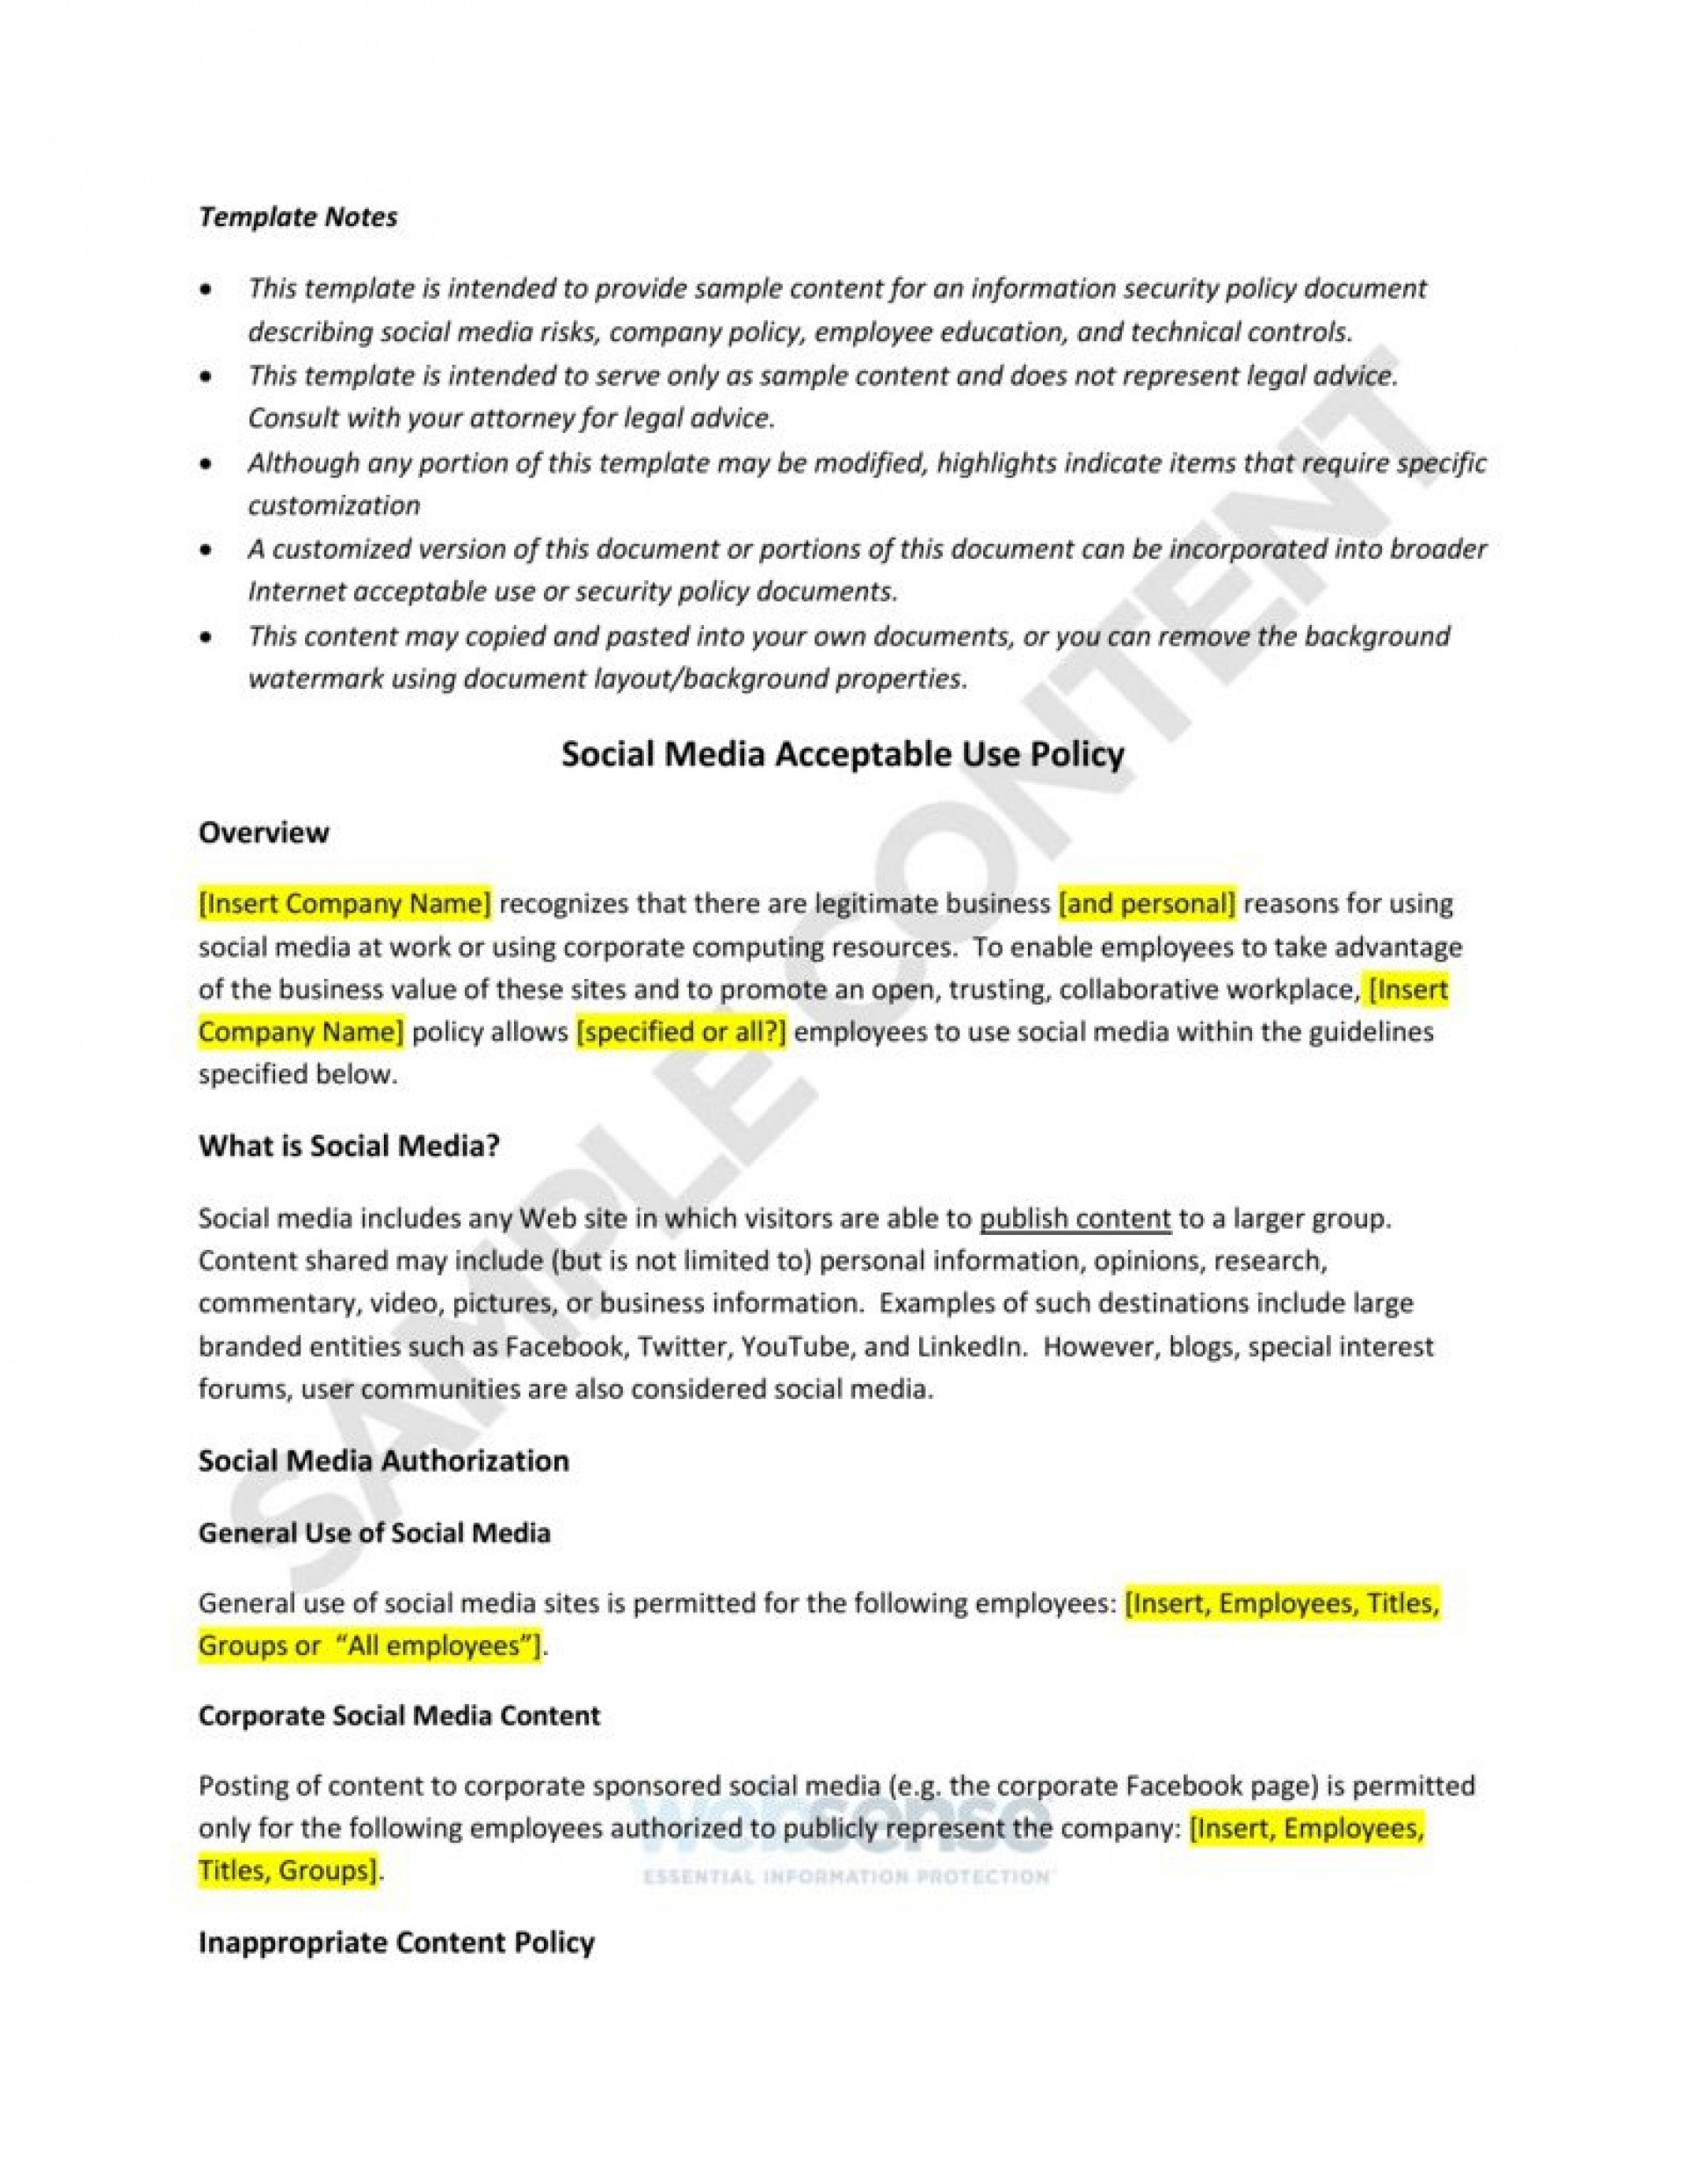 003 Amazing Social Media Policie Template High Definition  Policy For Small Busines Australia Employee Uk Counselor1920